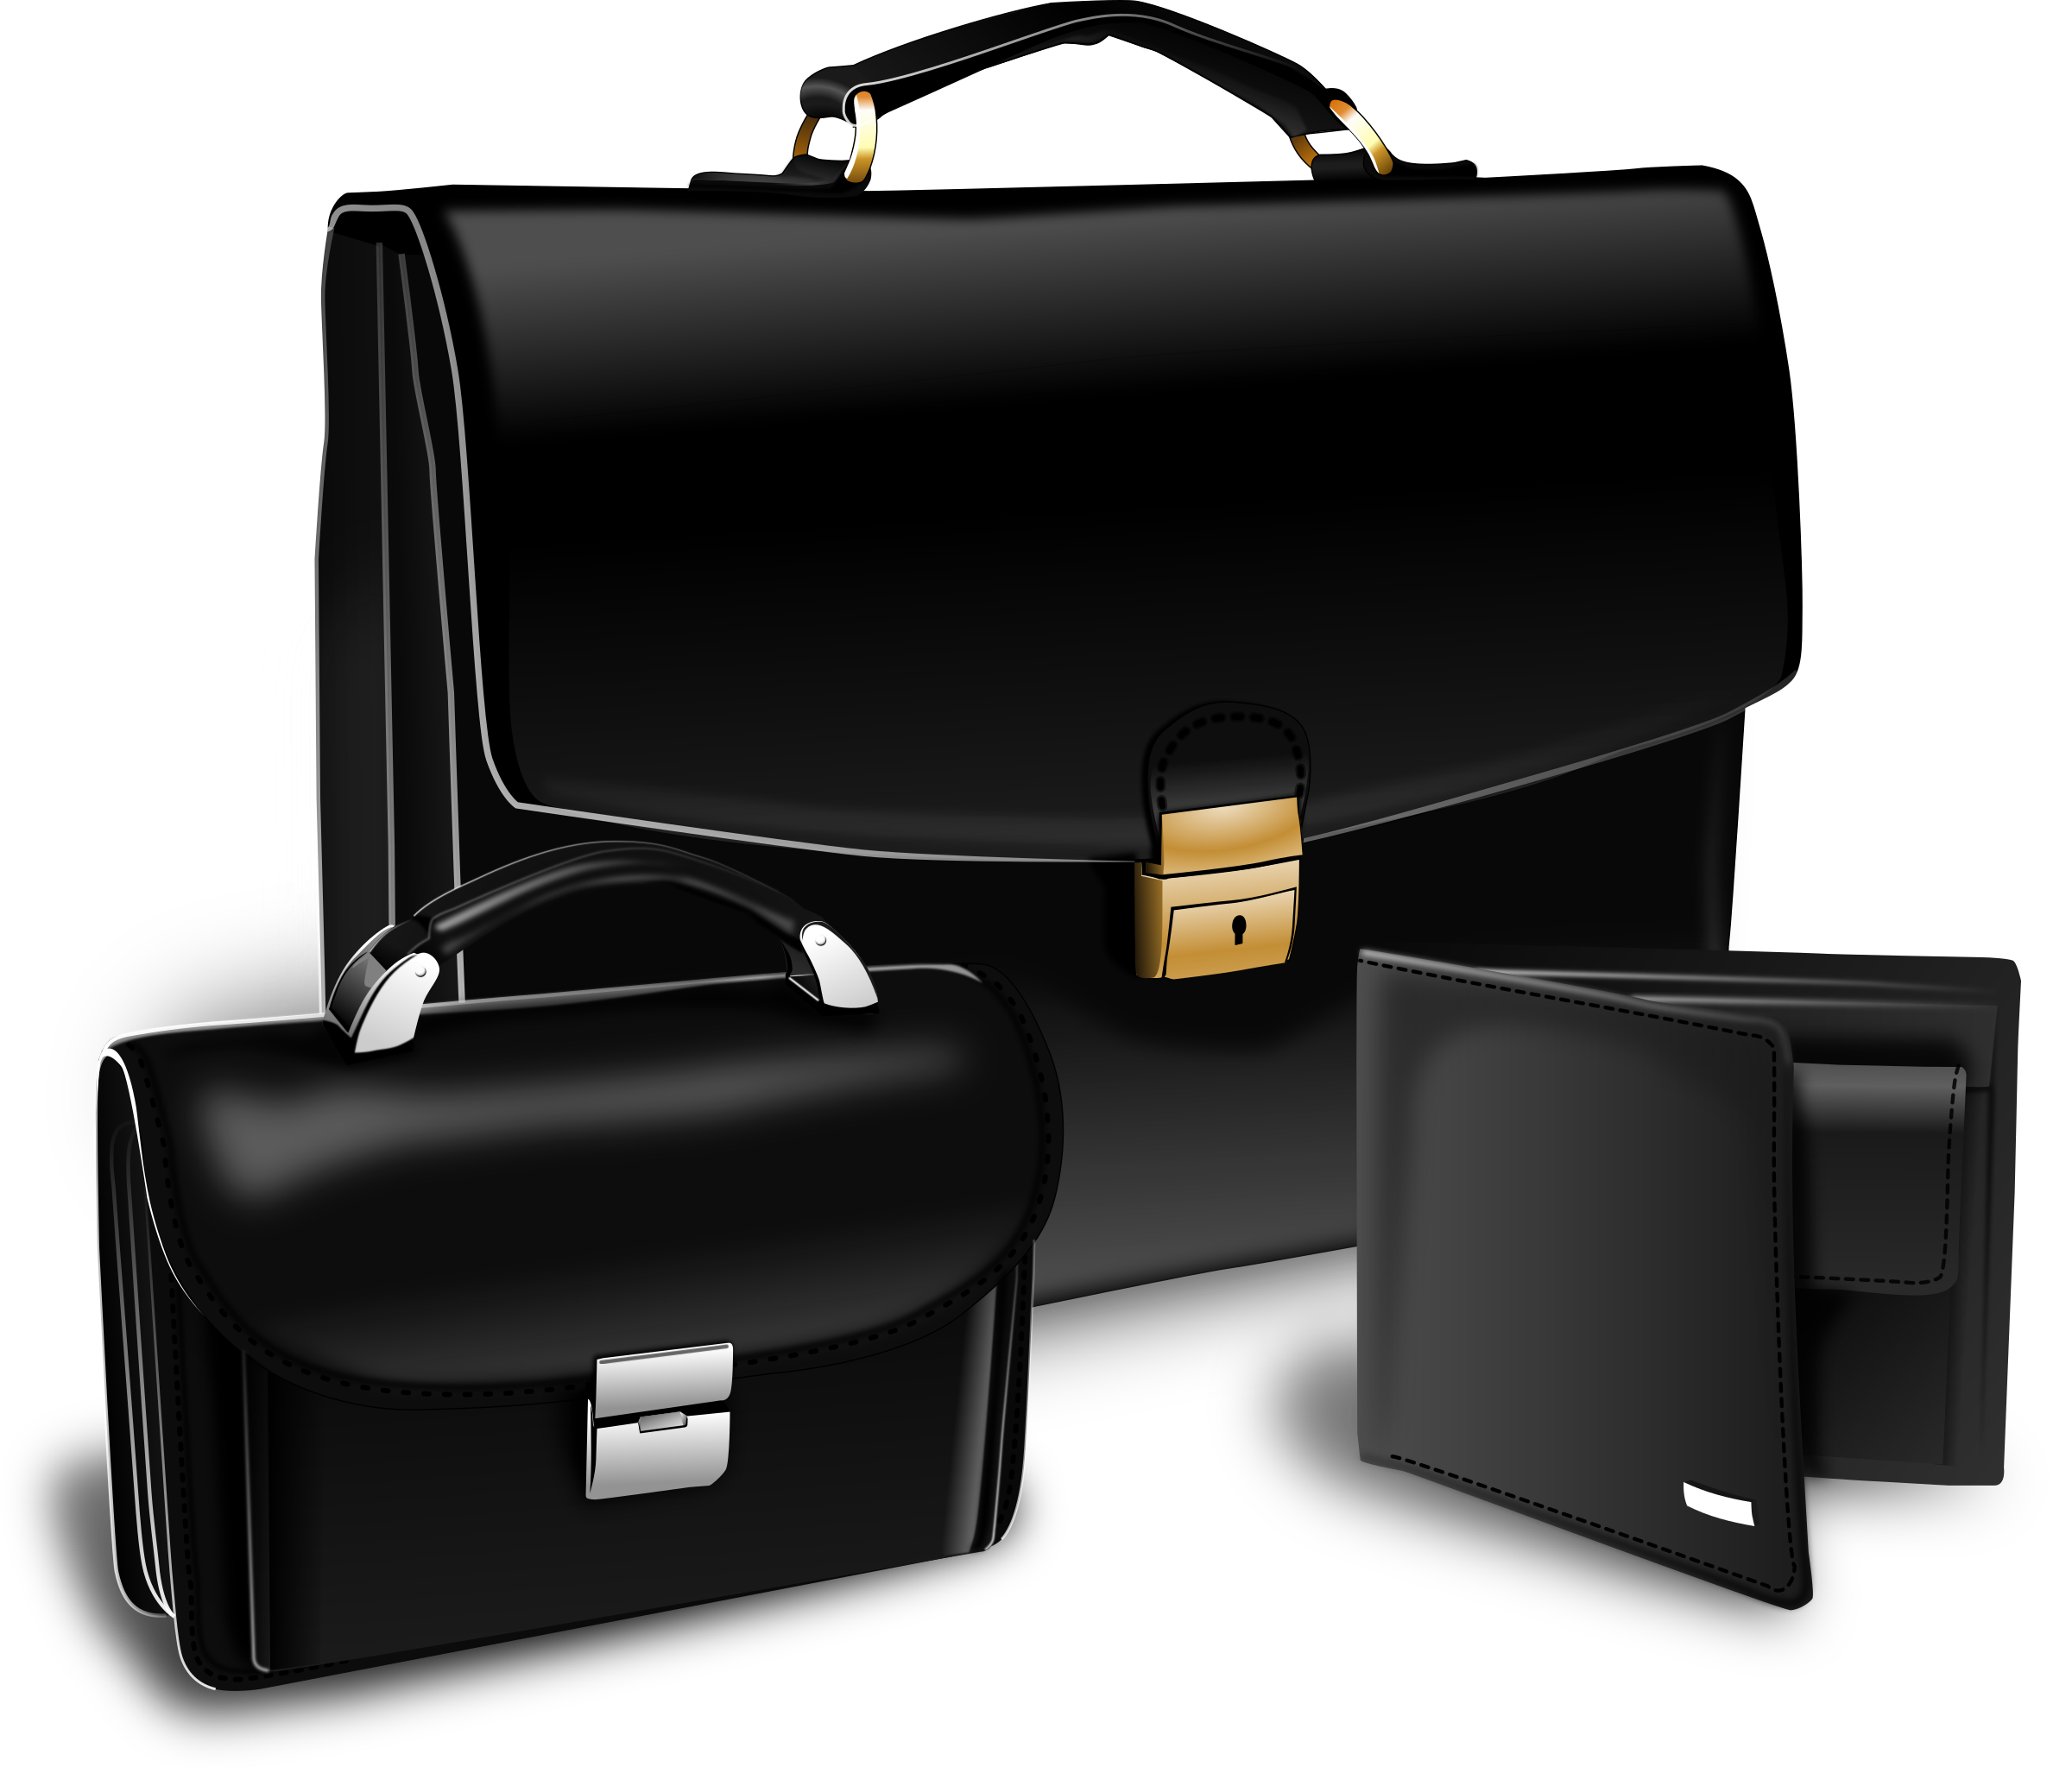 Suitcase, purse and handy by acvarium